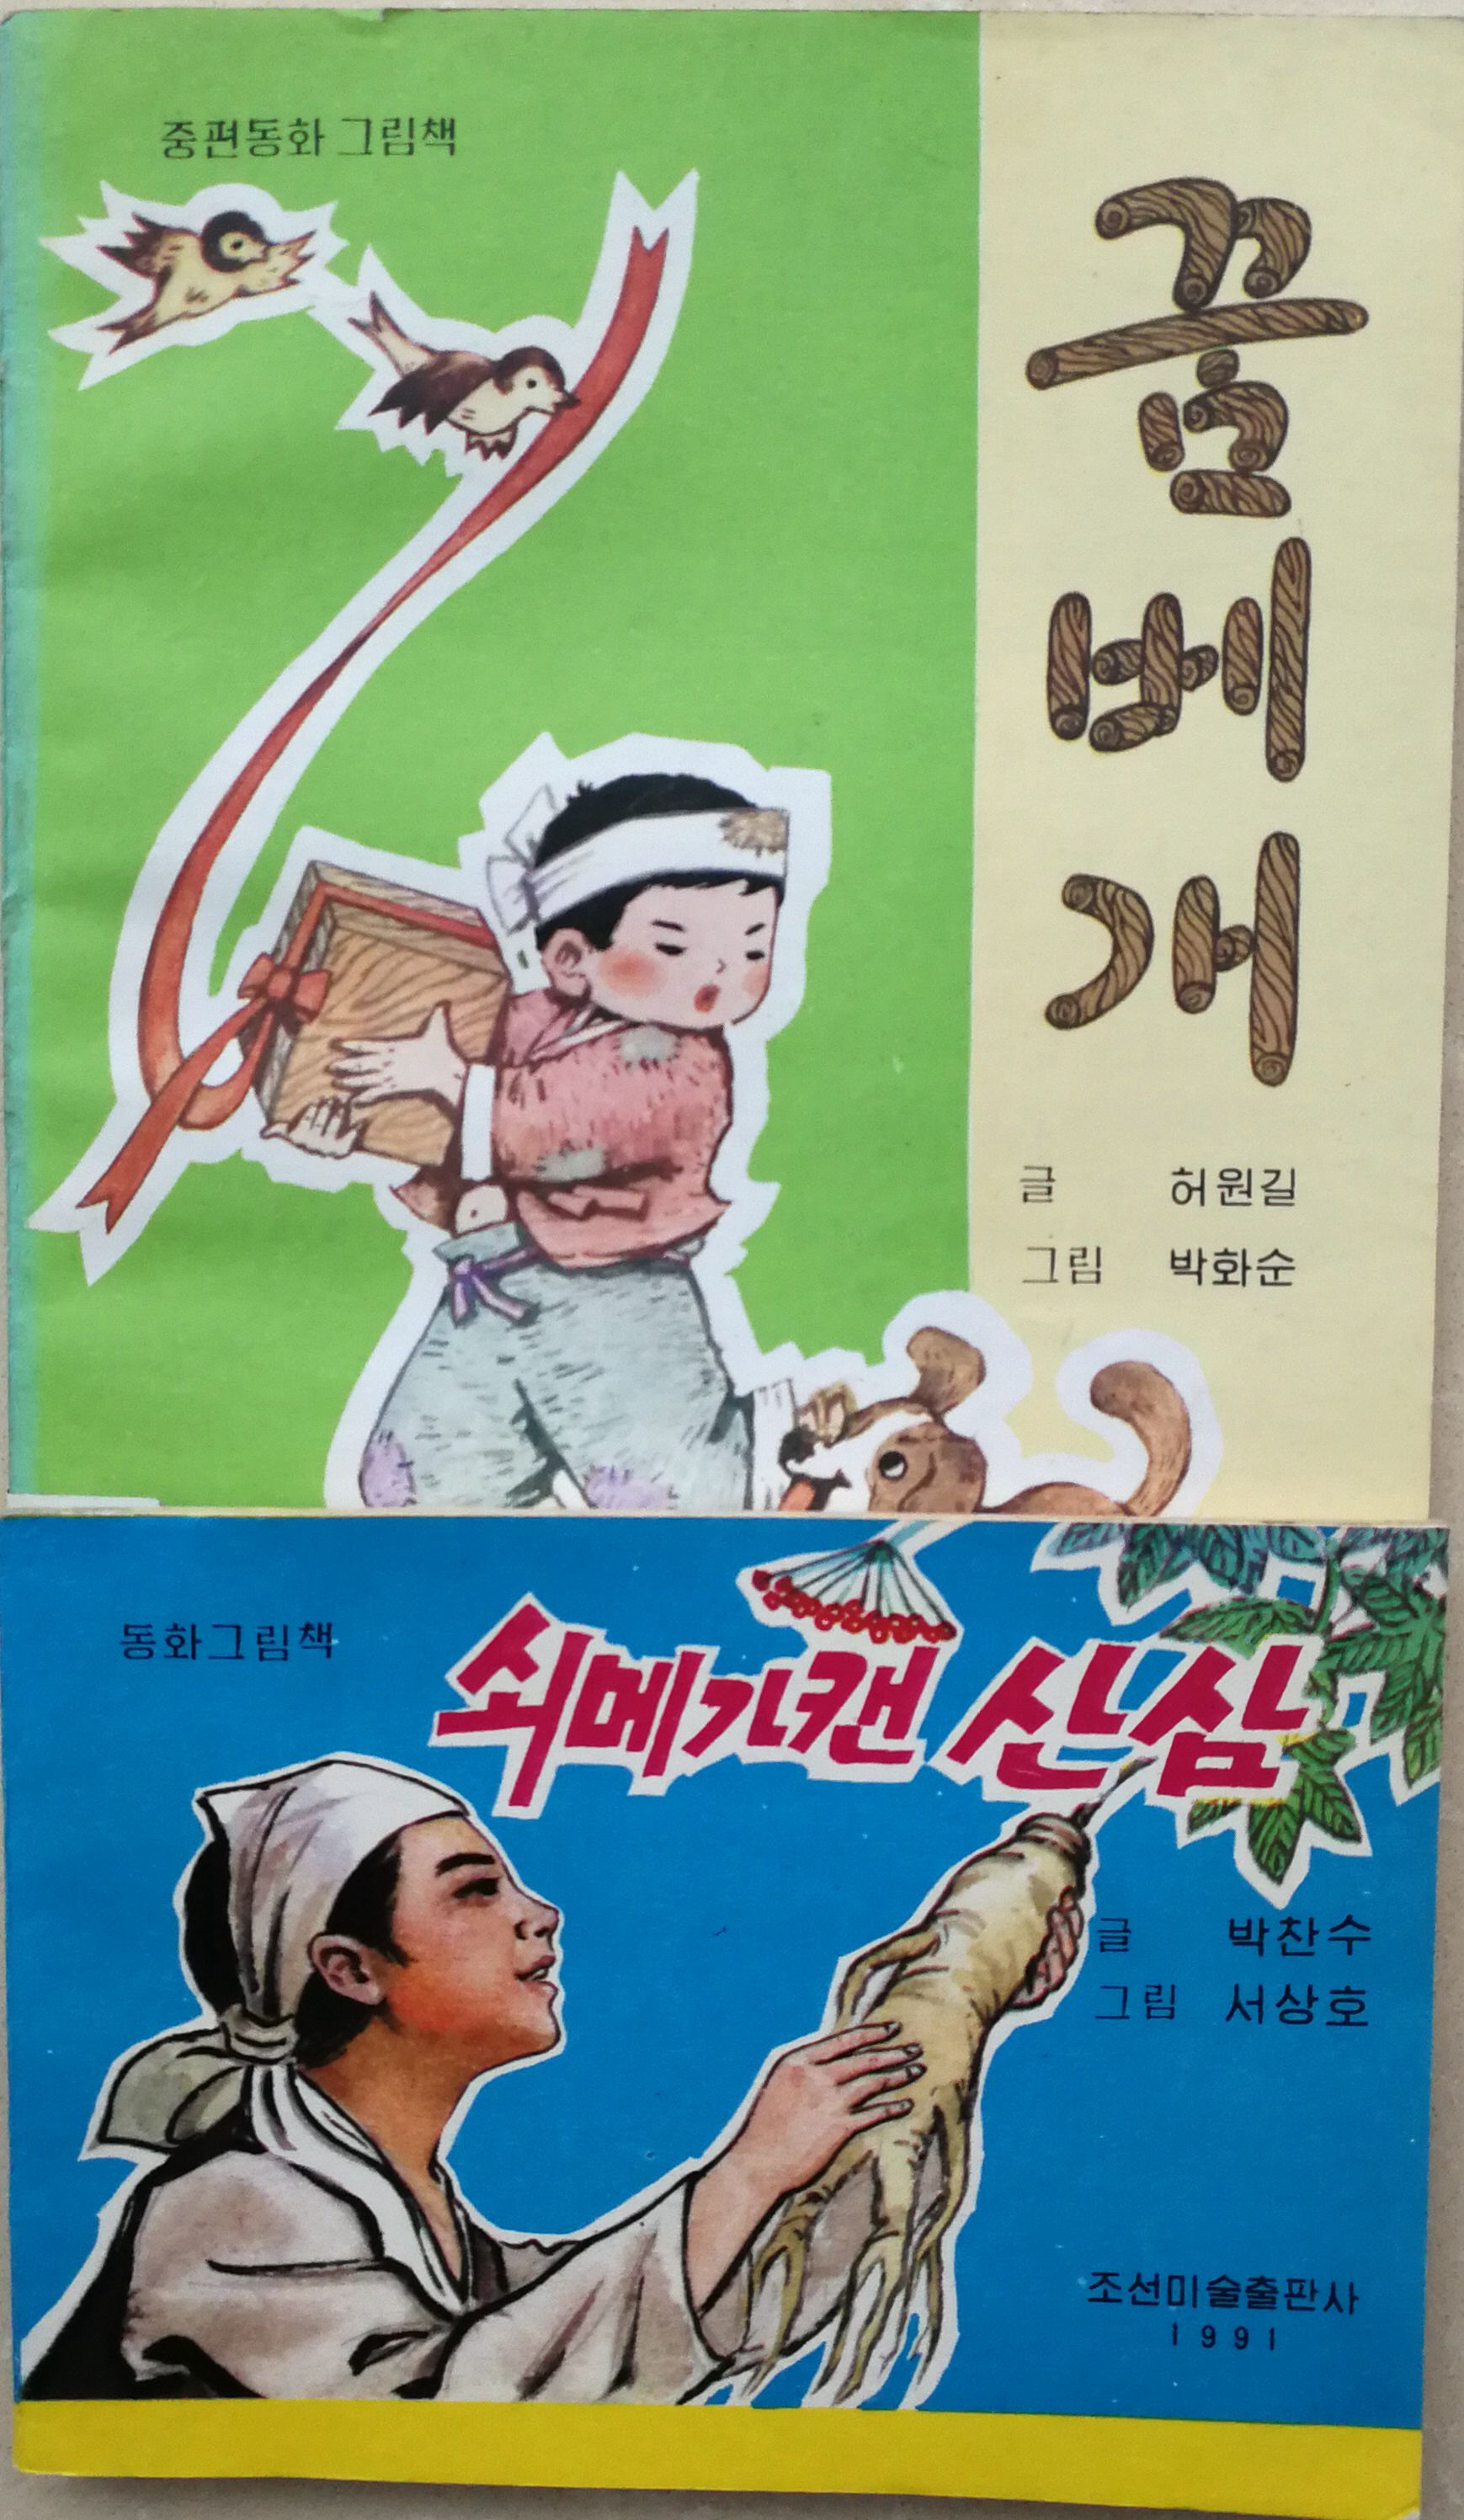 F9603, Korea Comic Book 2 Volumes (Large Size), 1991-95